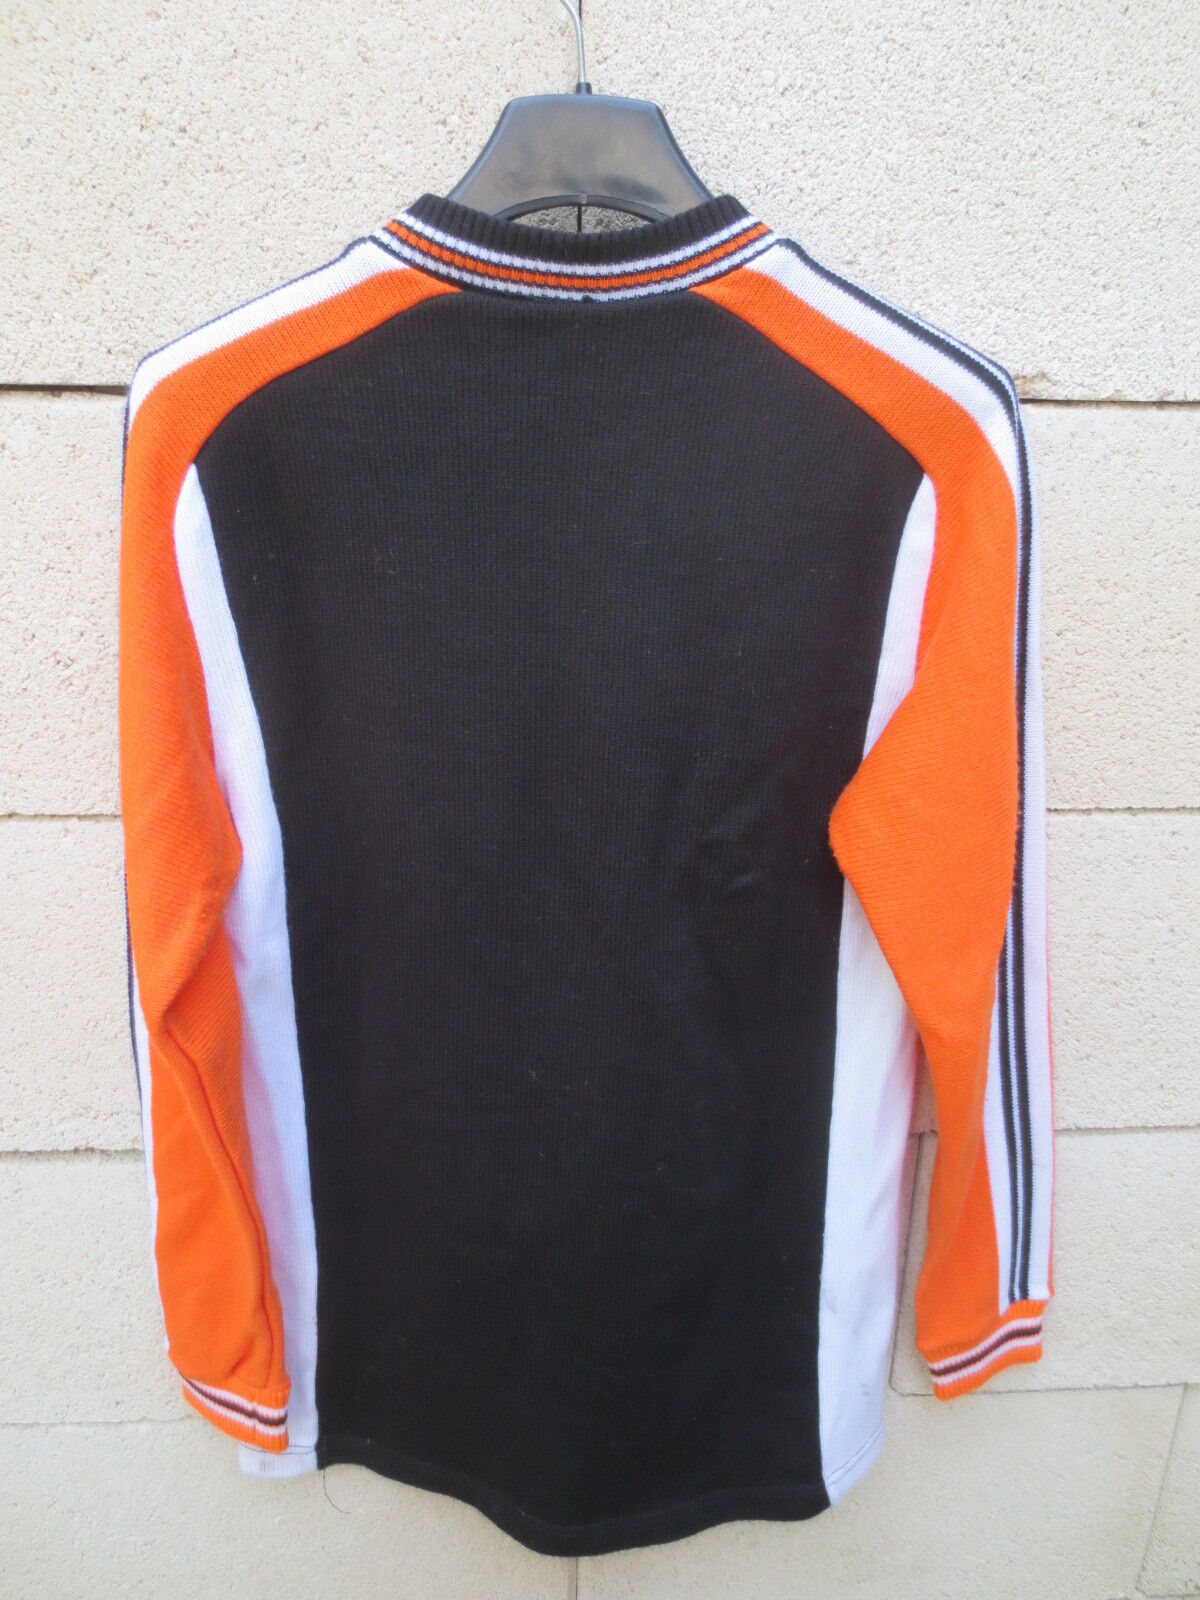 VINTAGE Maillot SPIDEL Sweat cycliste WOLBER SPIDEL Maillot Tour 1982 shirt jersey trikot 2 168 c70a66